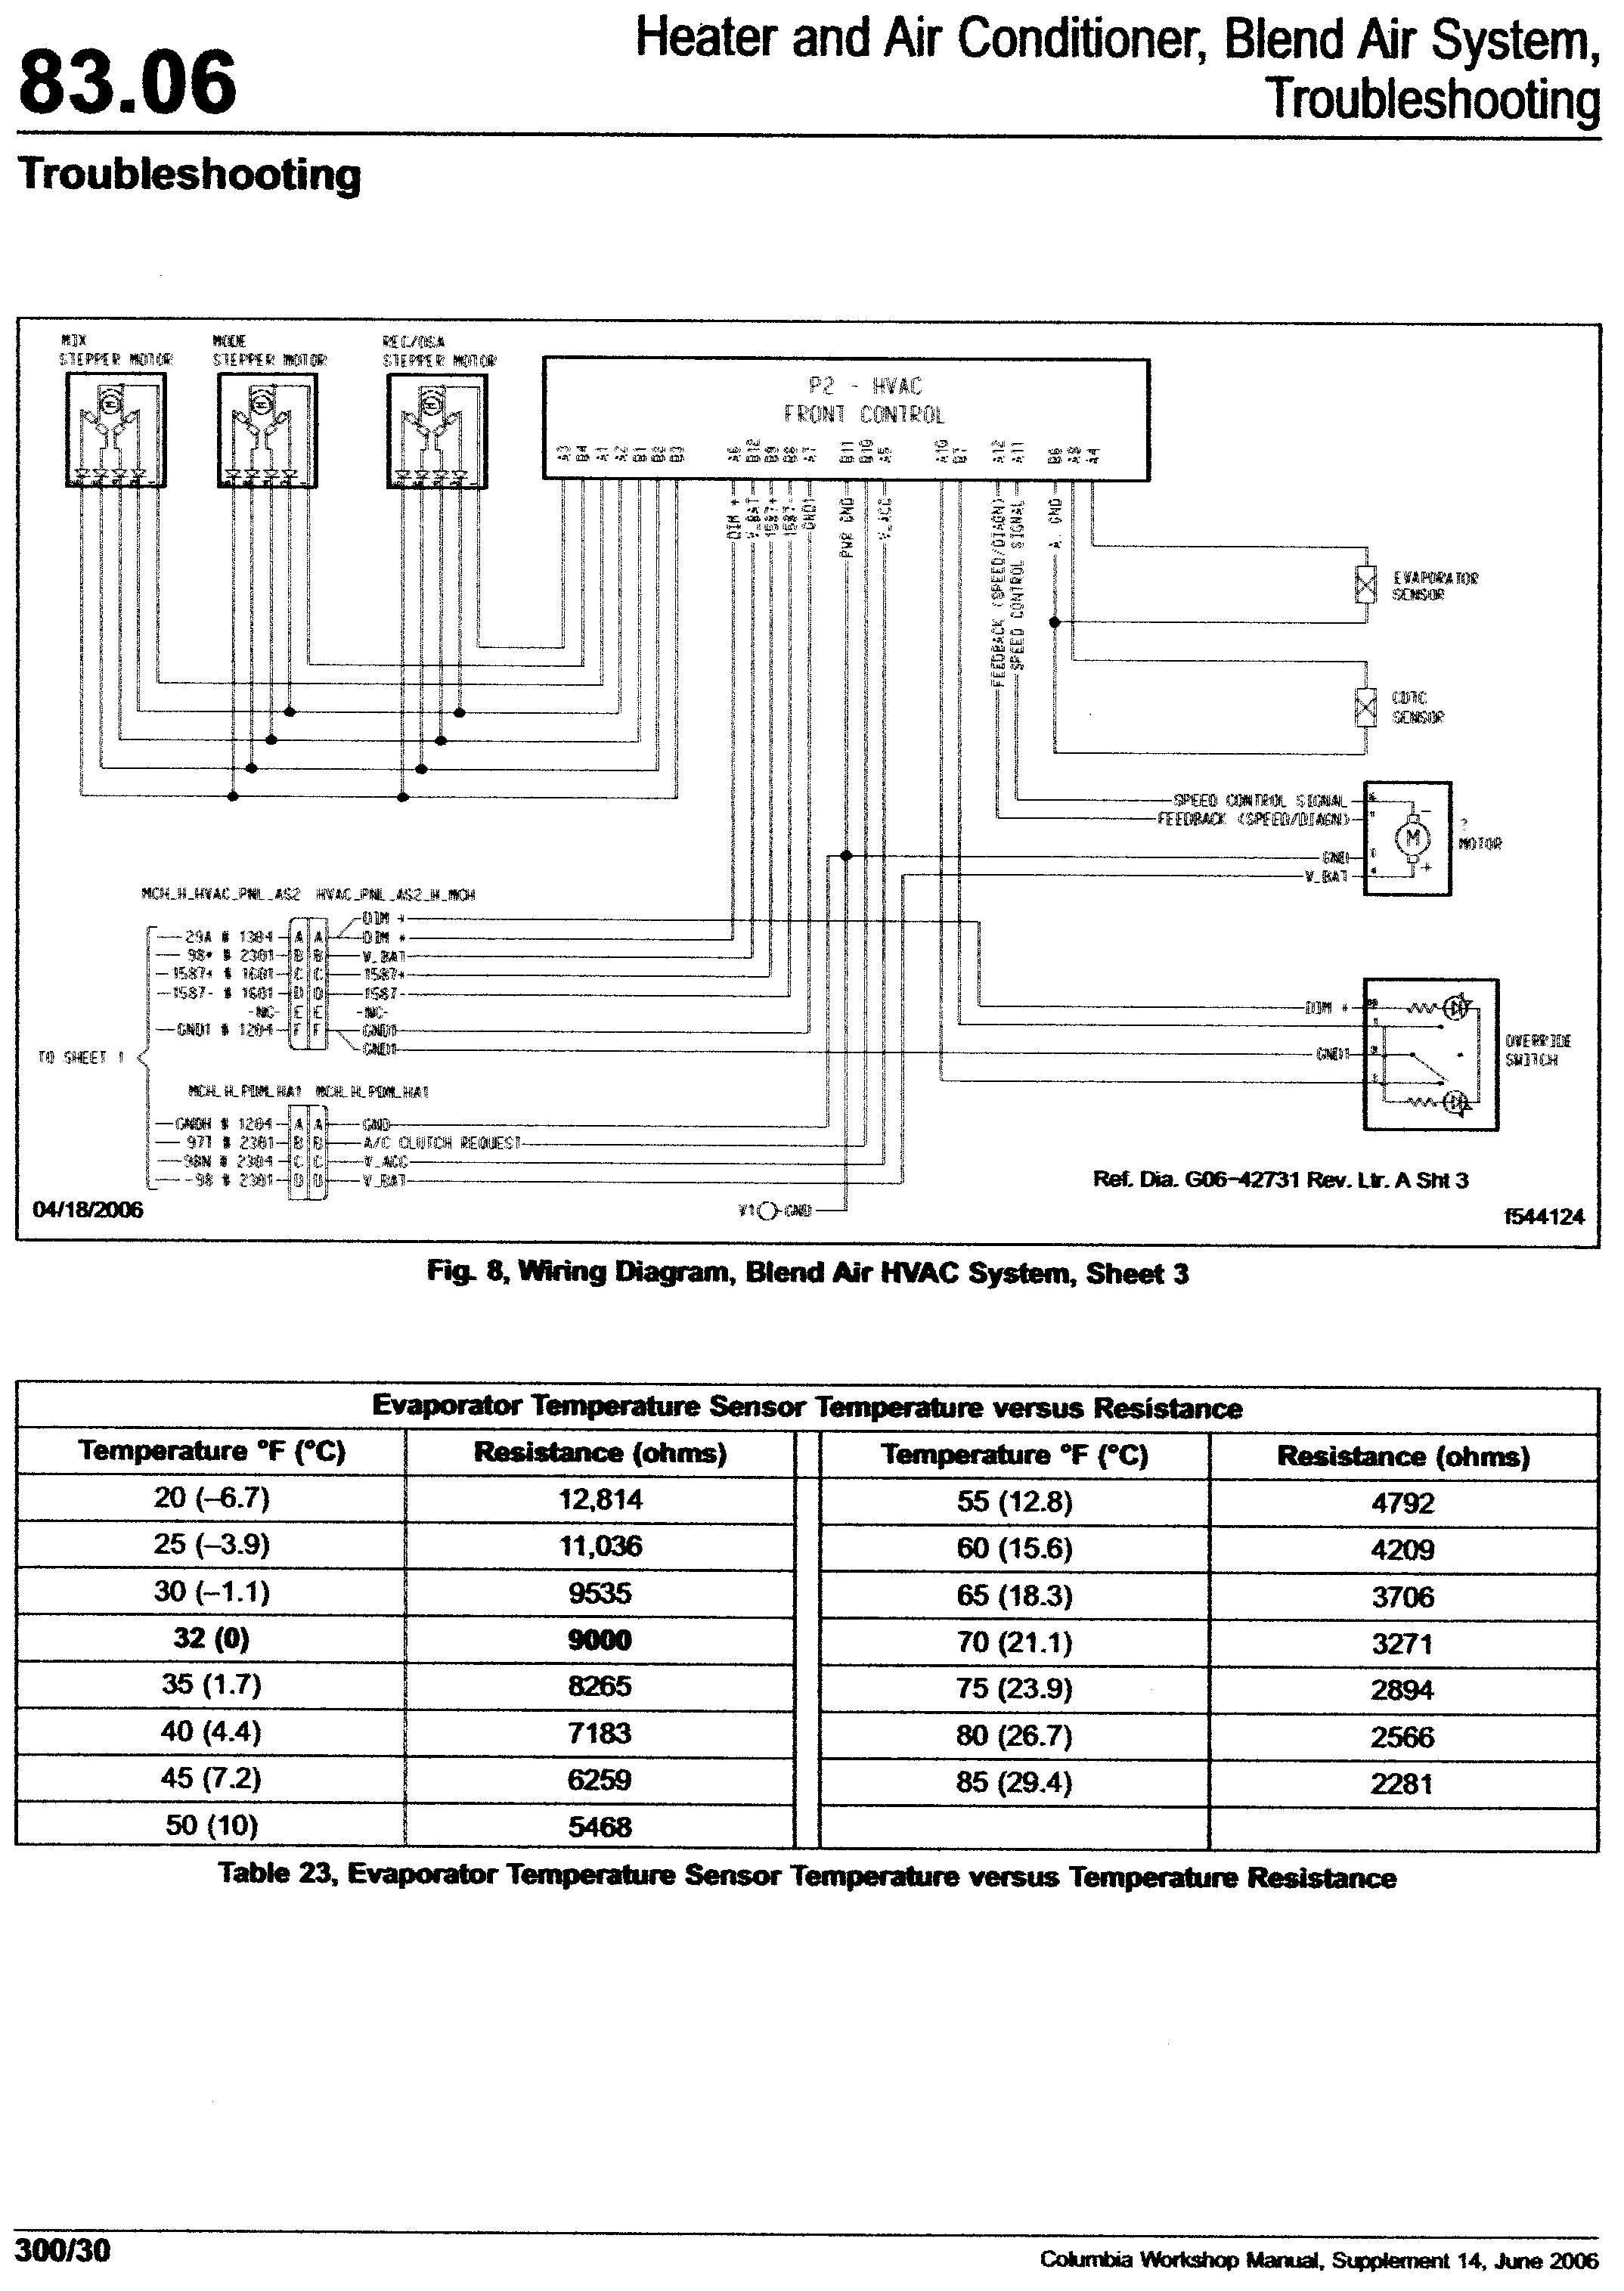 freightliner m2 wiring diagram Collection-Freightliner M2 Wiring Diagram Best Freightliner Wiring Diagram Manual Best 2006 Freightliner 19-s